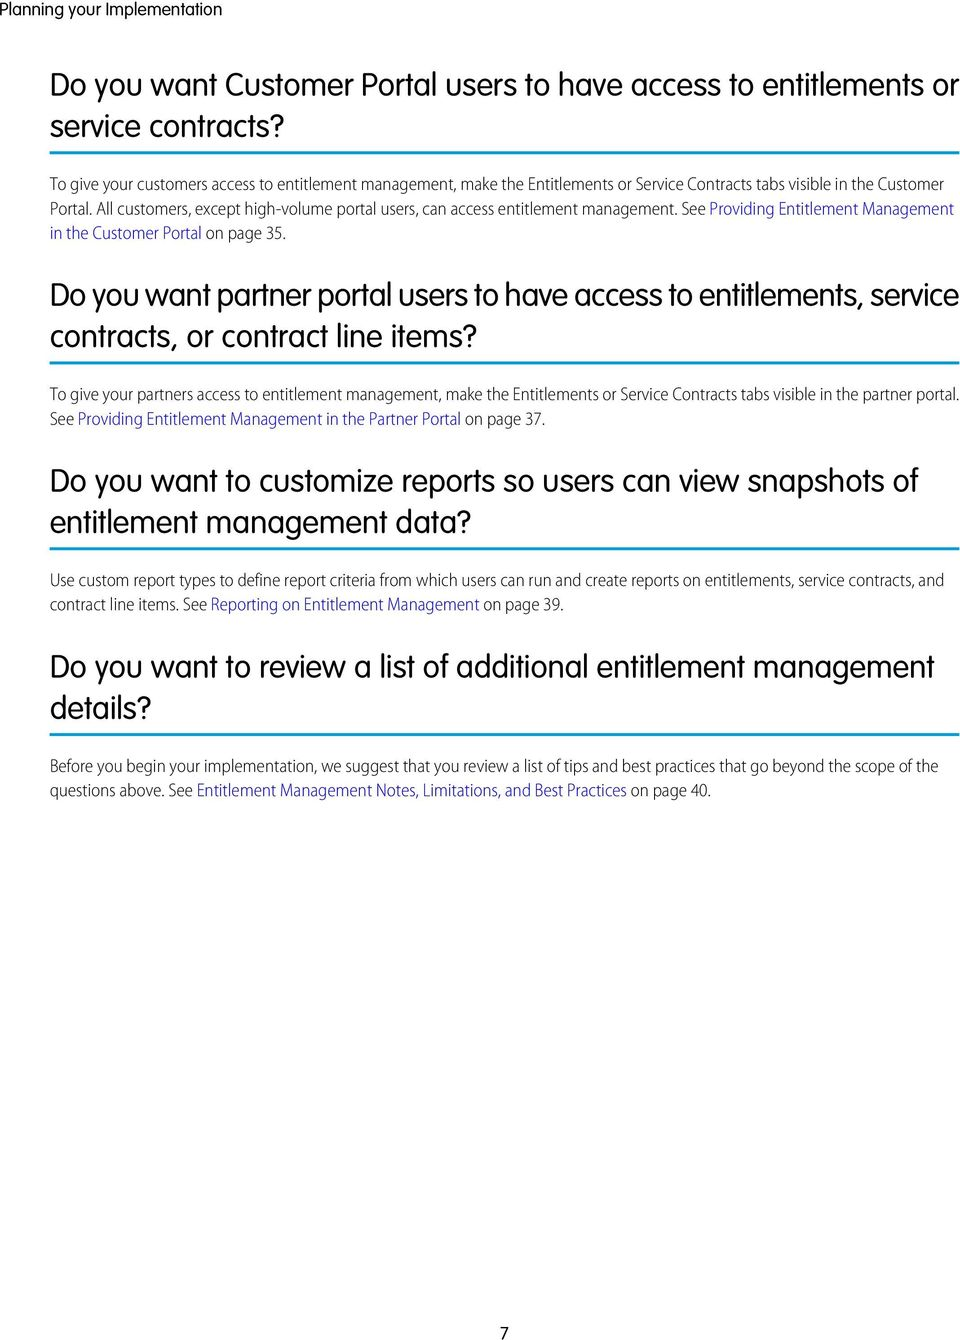 All customers, except high-volume portal users, can access entitlement management. See Providing Entitlement Management in the Customer Portal on page 35.